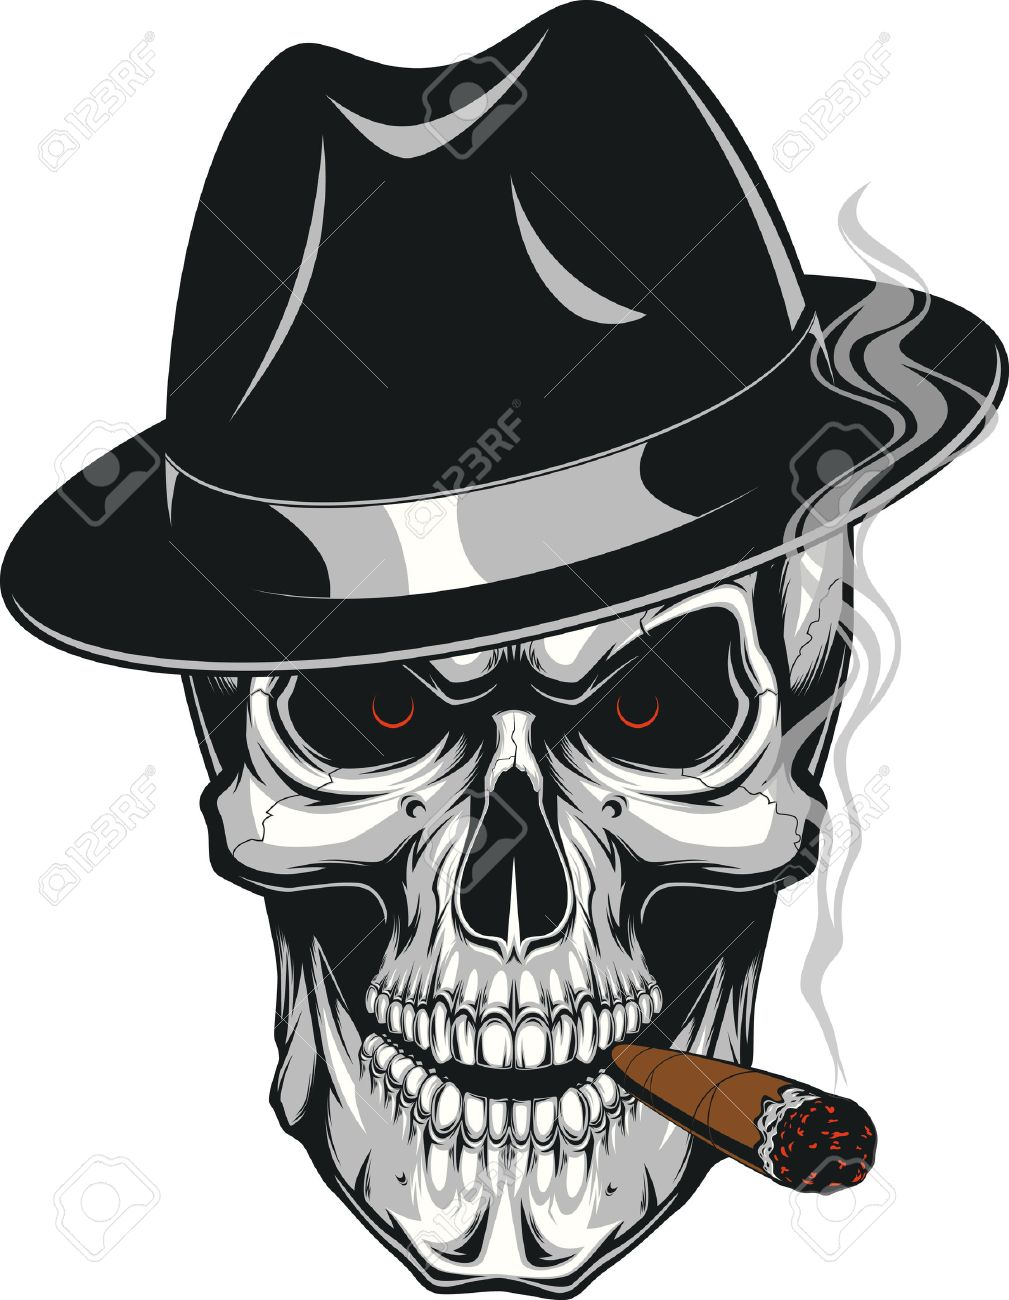 Vector illustration of an evil human skull in hat smoking a cigar on a white background - 59132426